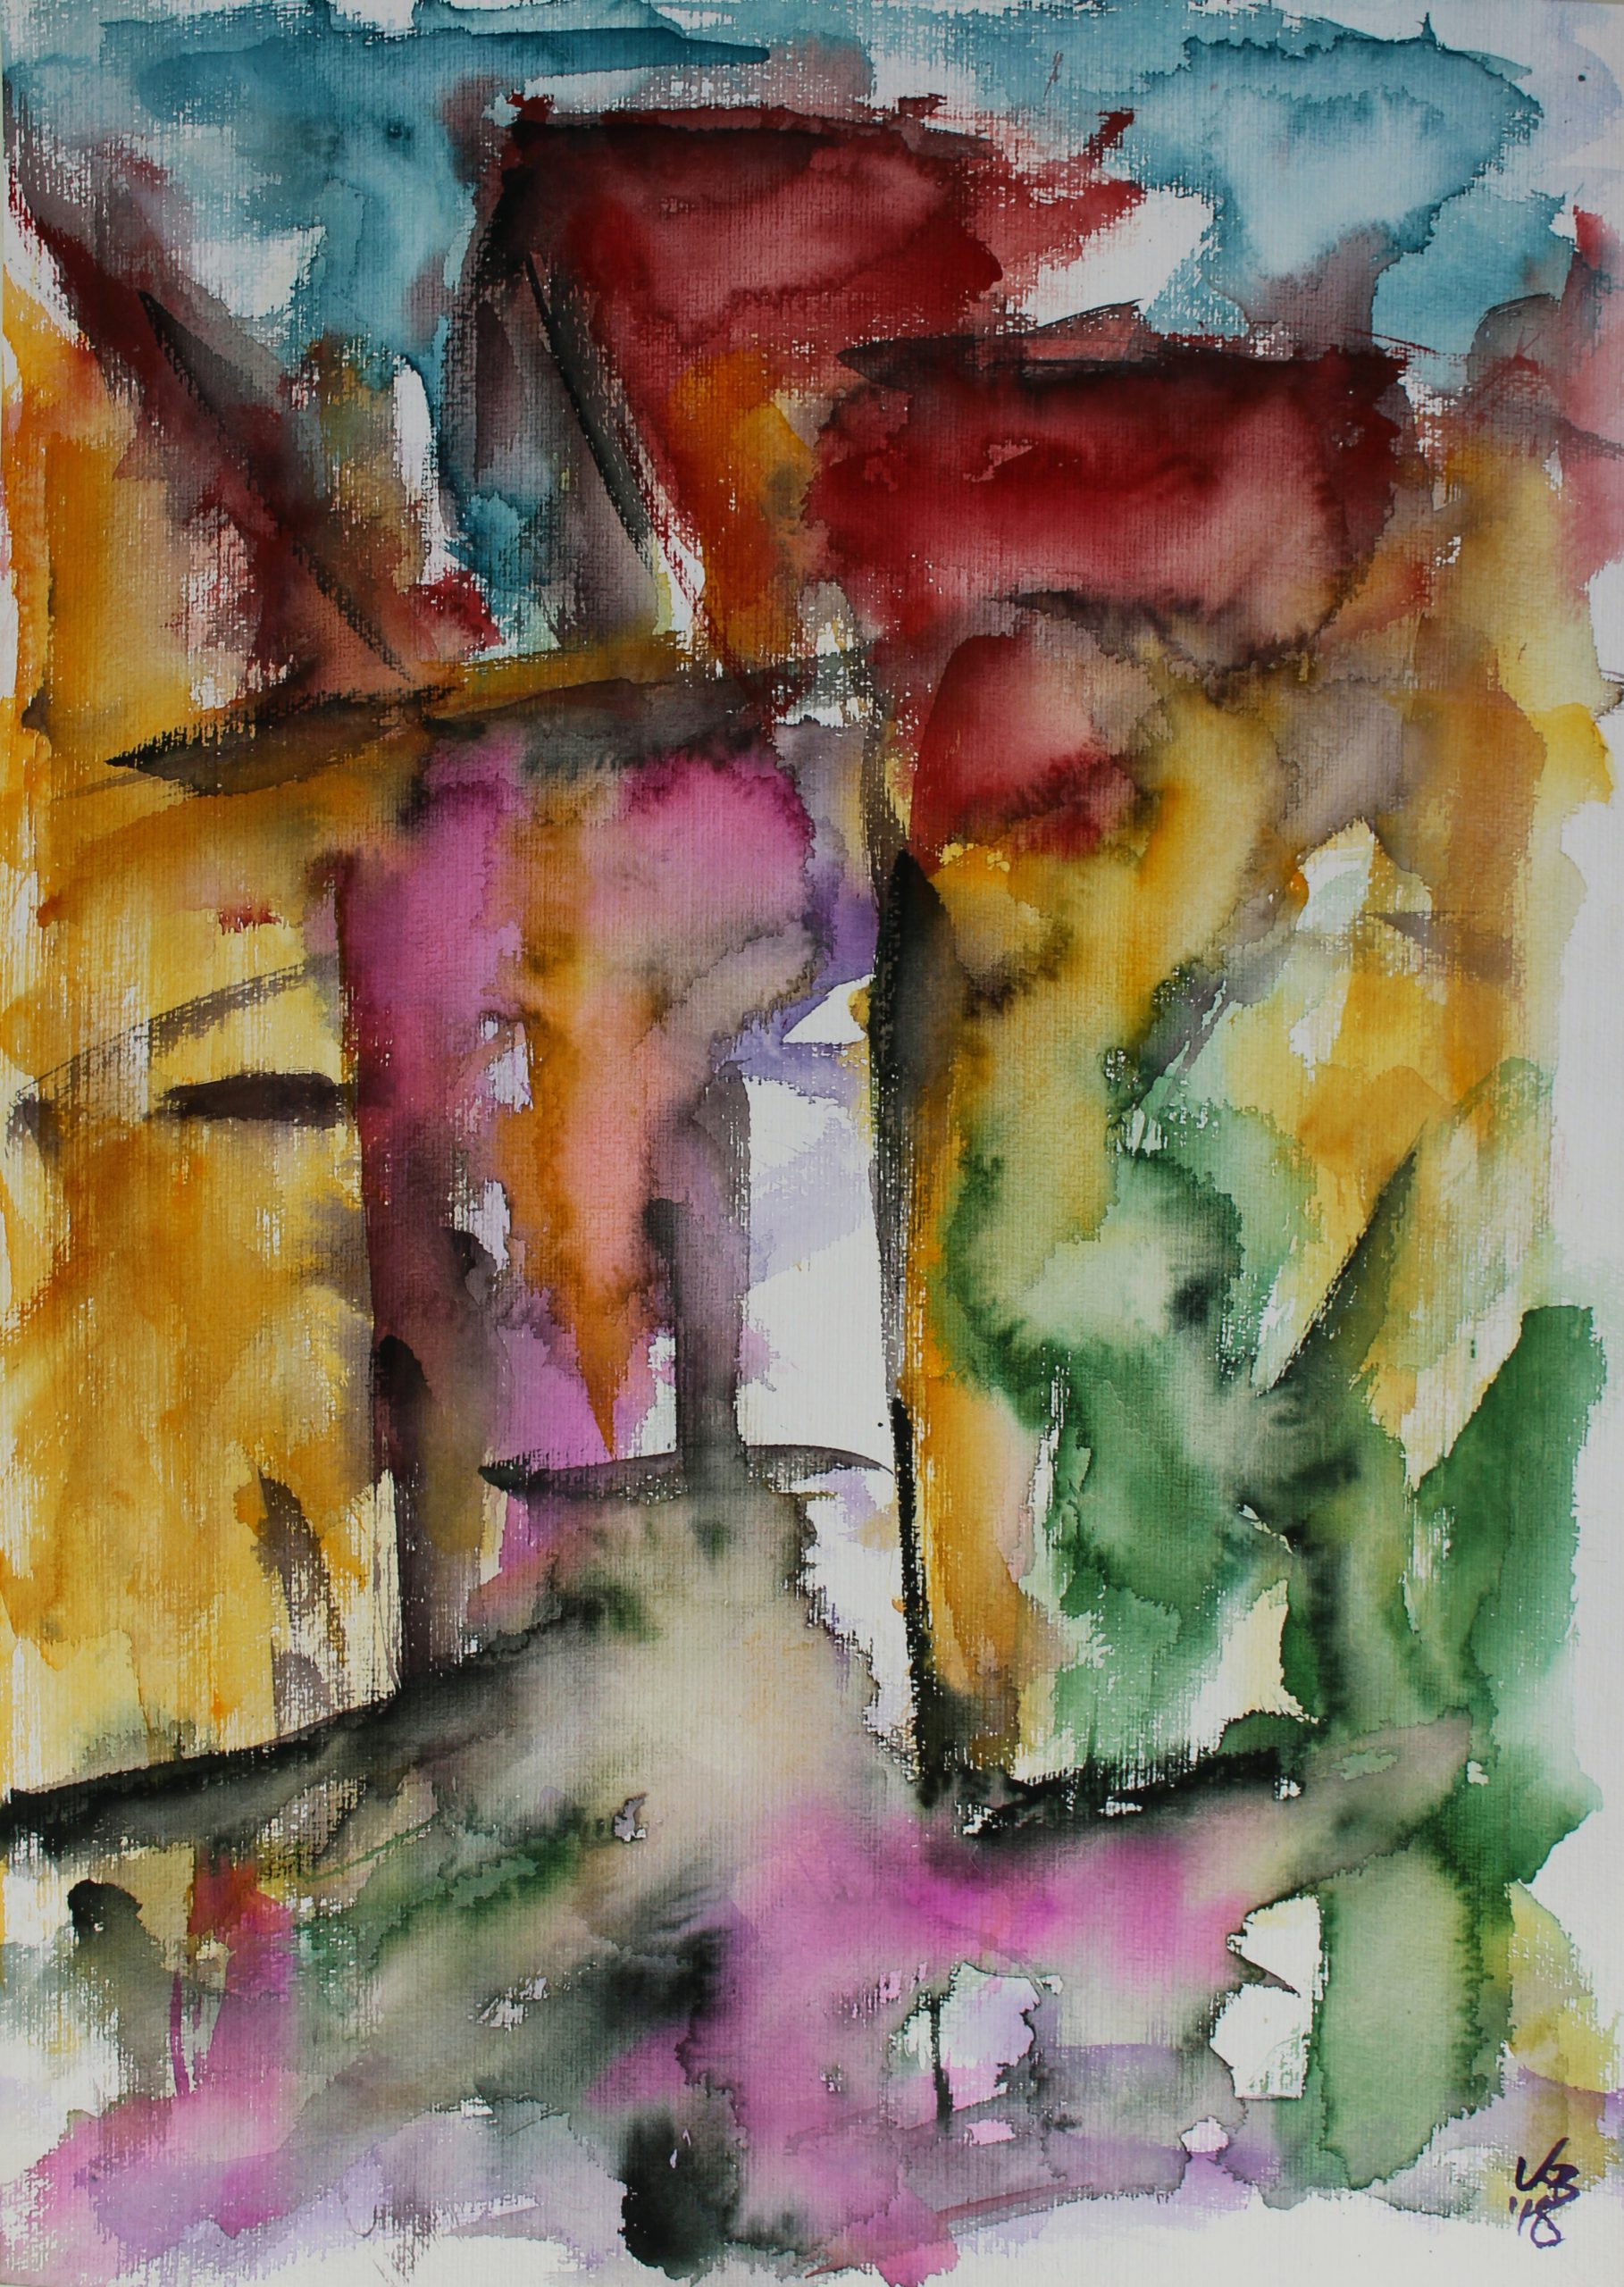 changing places I, Homberg, Webergasse, Watercolour 50 x 70 cm, © 2018 by Klaus Bölling